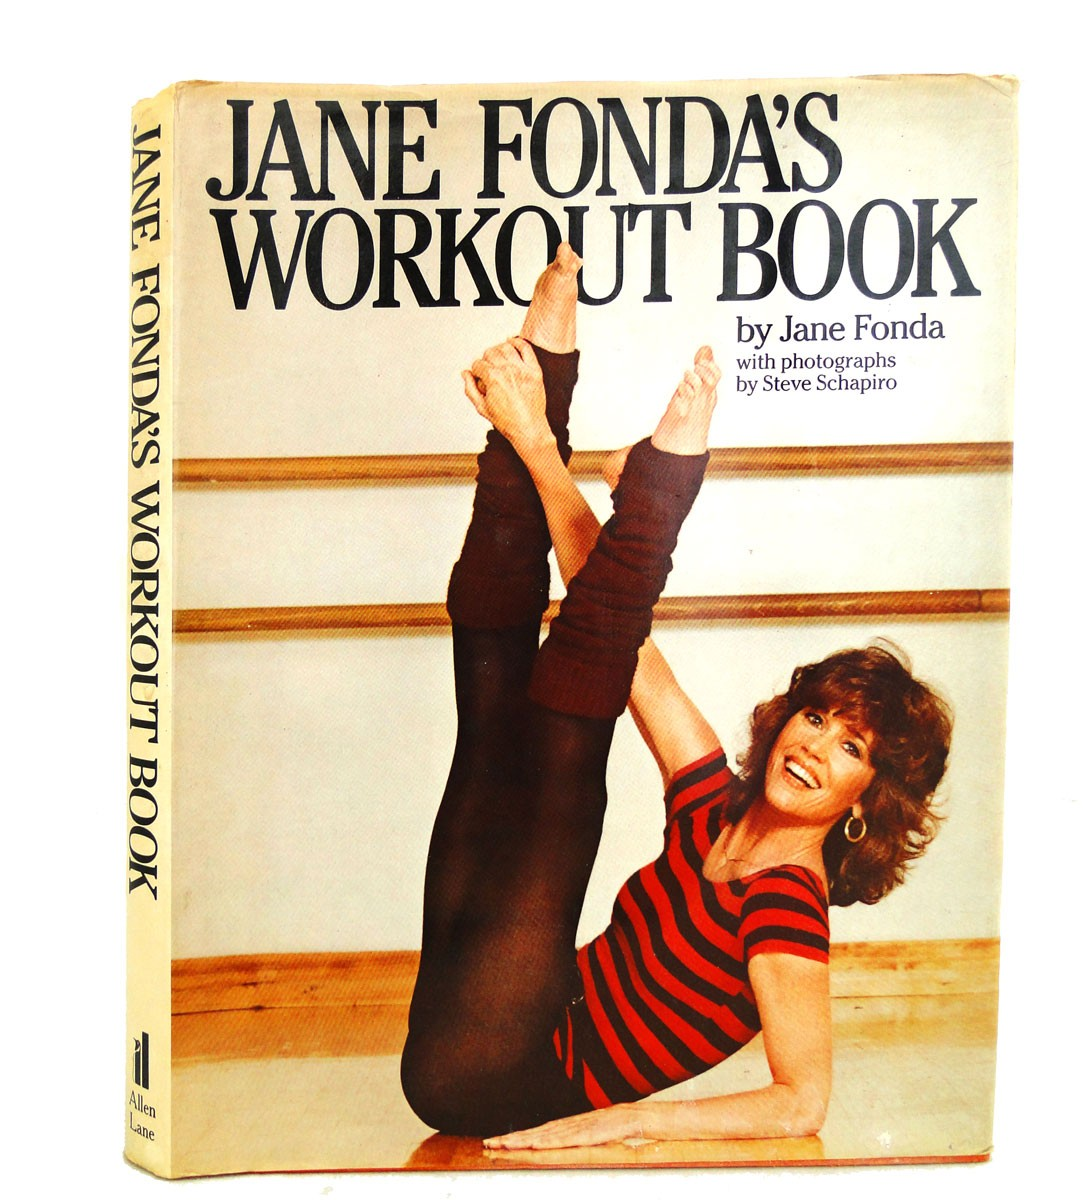 an introduction to the demon within jane fonda I am frequently asked about my faith at the end of my marriage to ted turner i became a christian for several years prior, i had begun to feel i was being lead i felt a presence, a reverence humming within me.